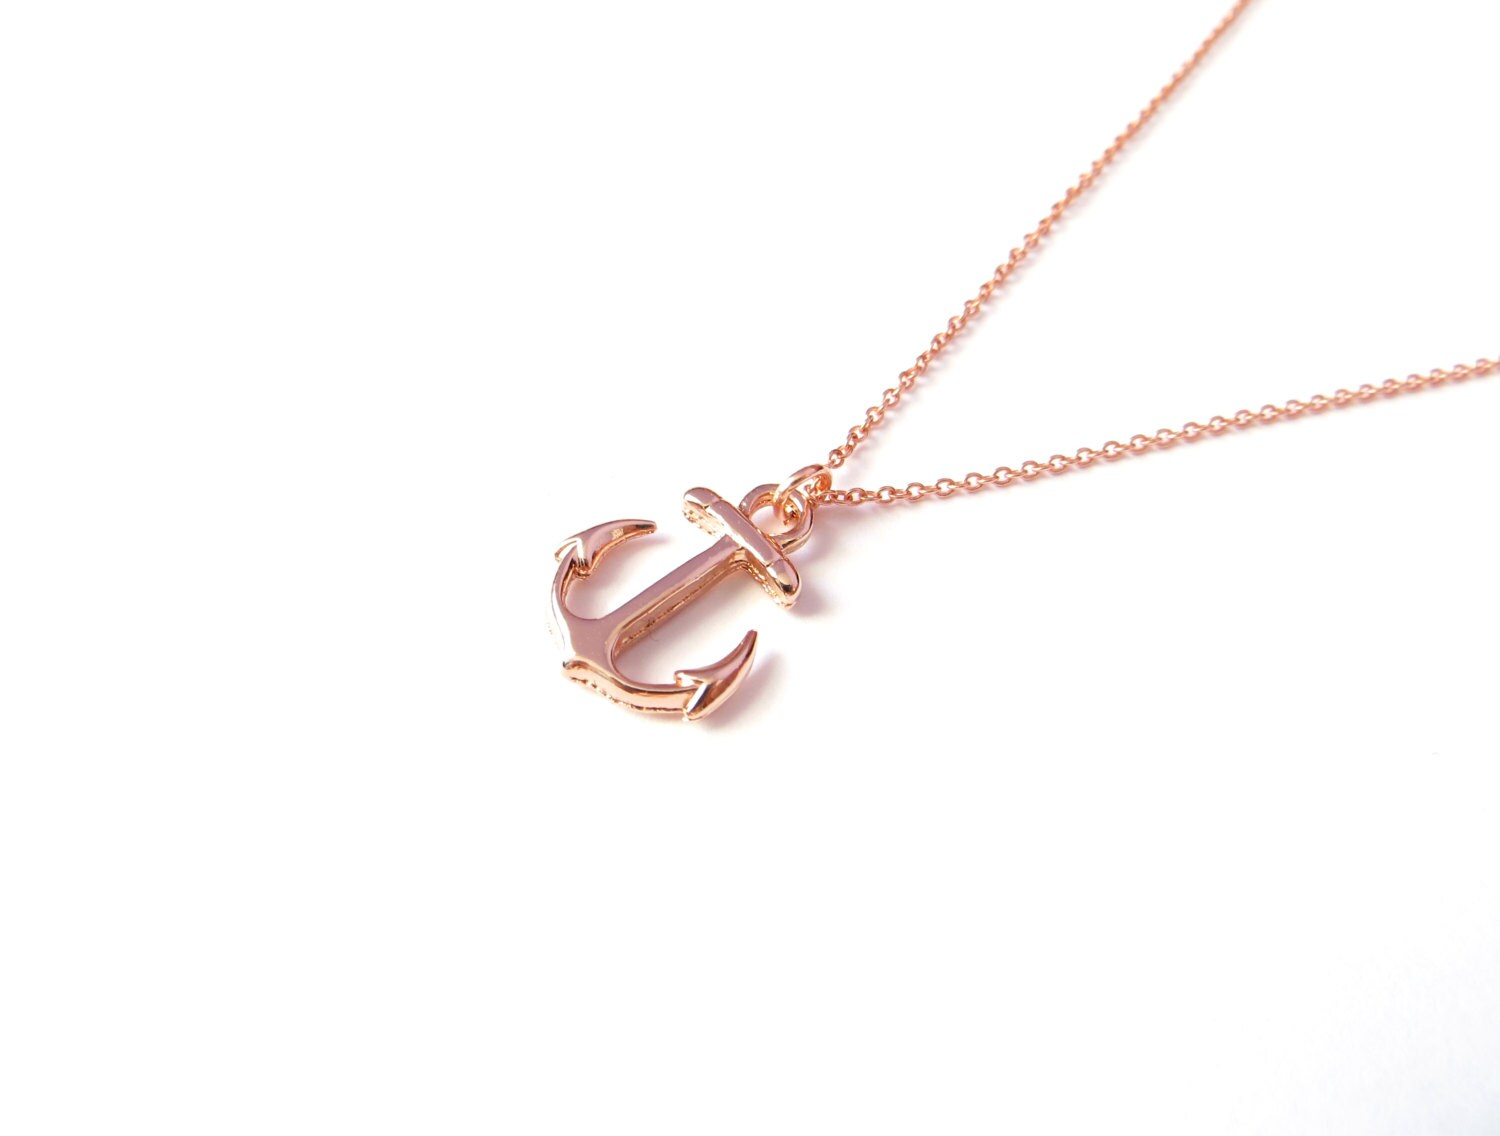 Rose Gold Anchor Necklace 14kt Rose Gold Filled Nautical